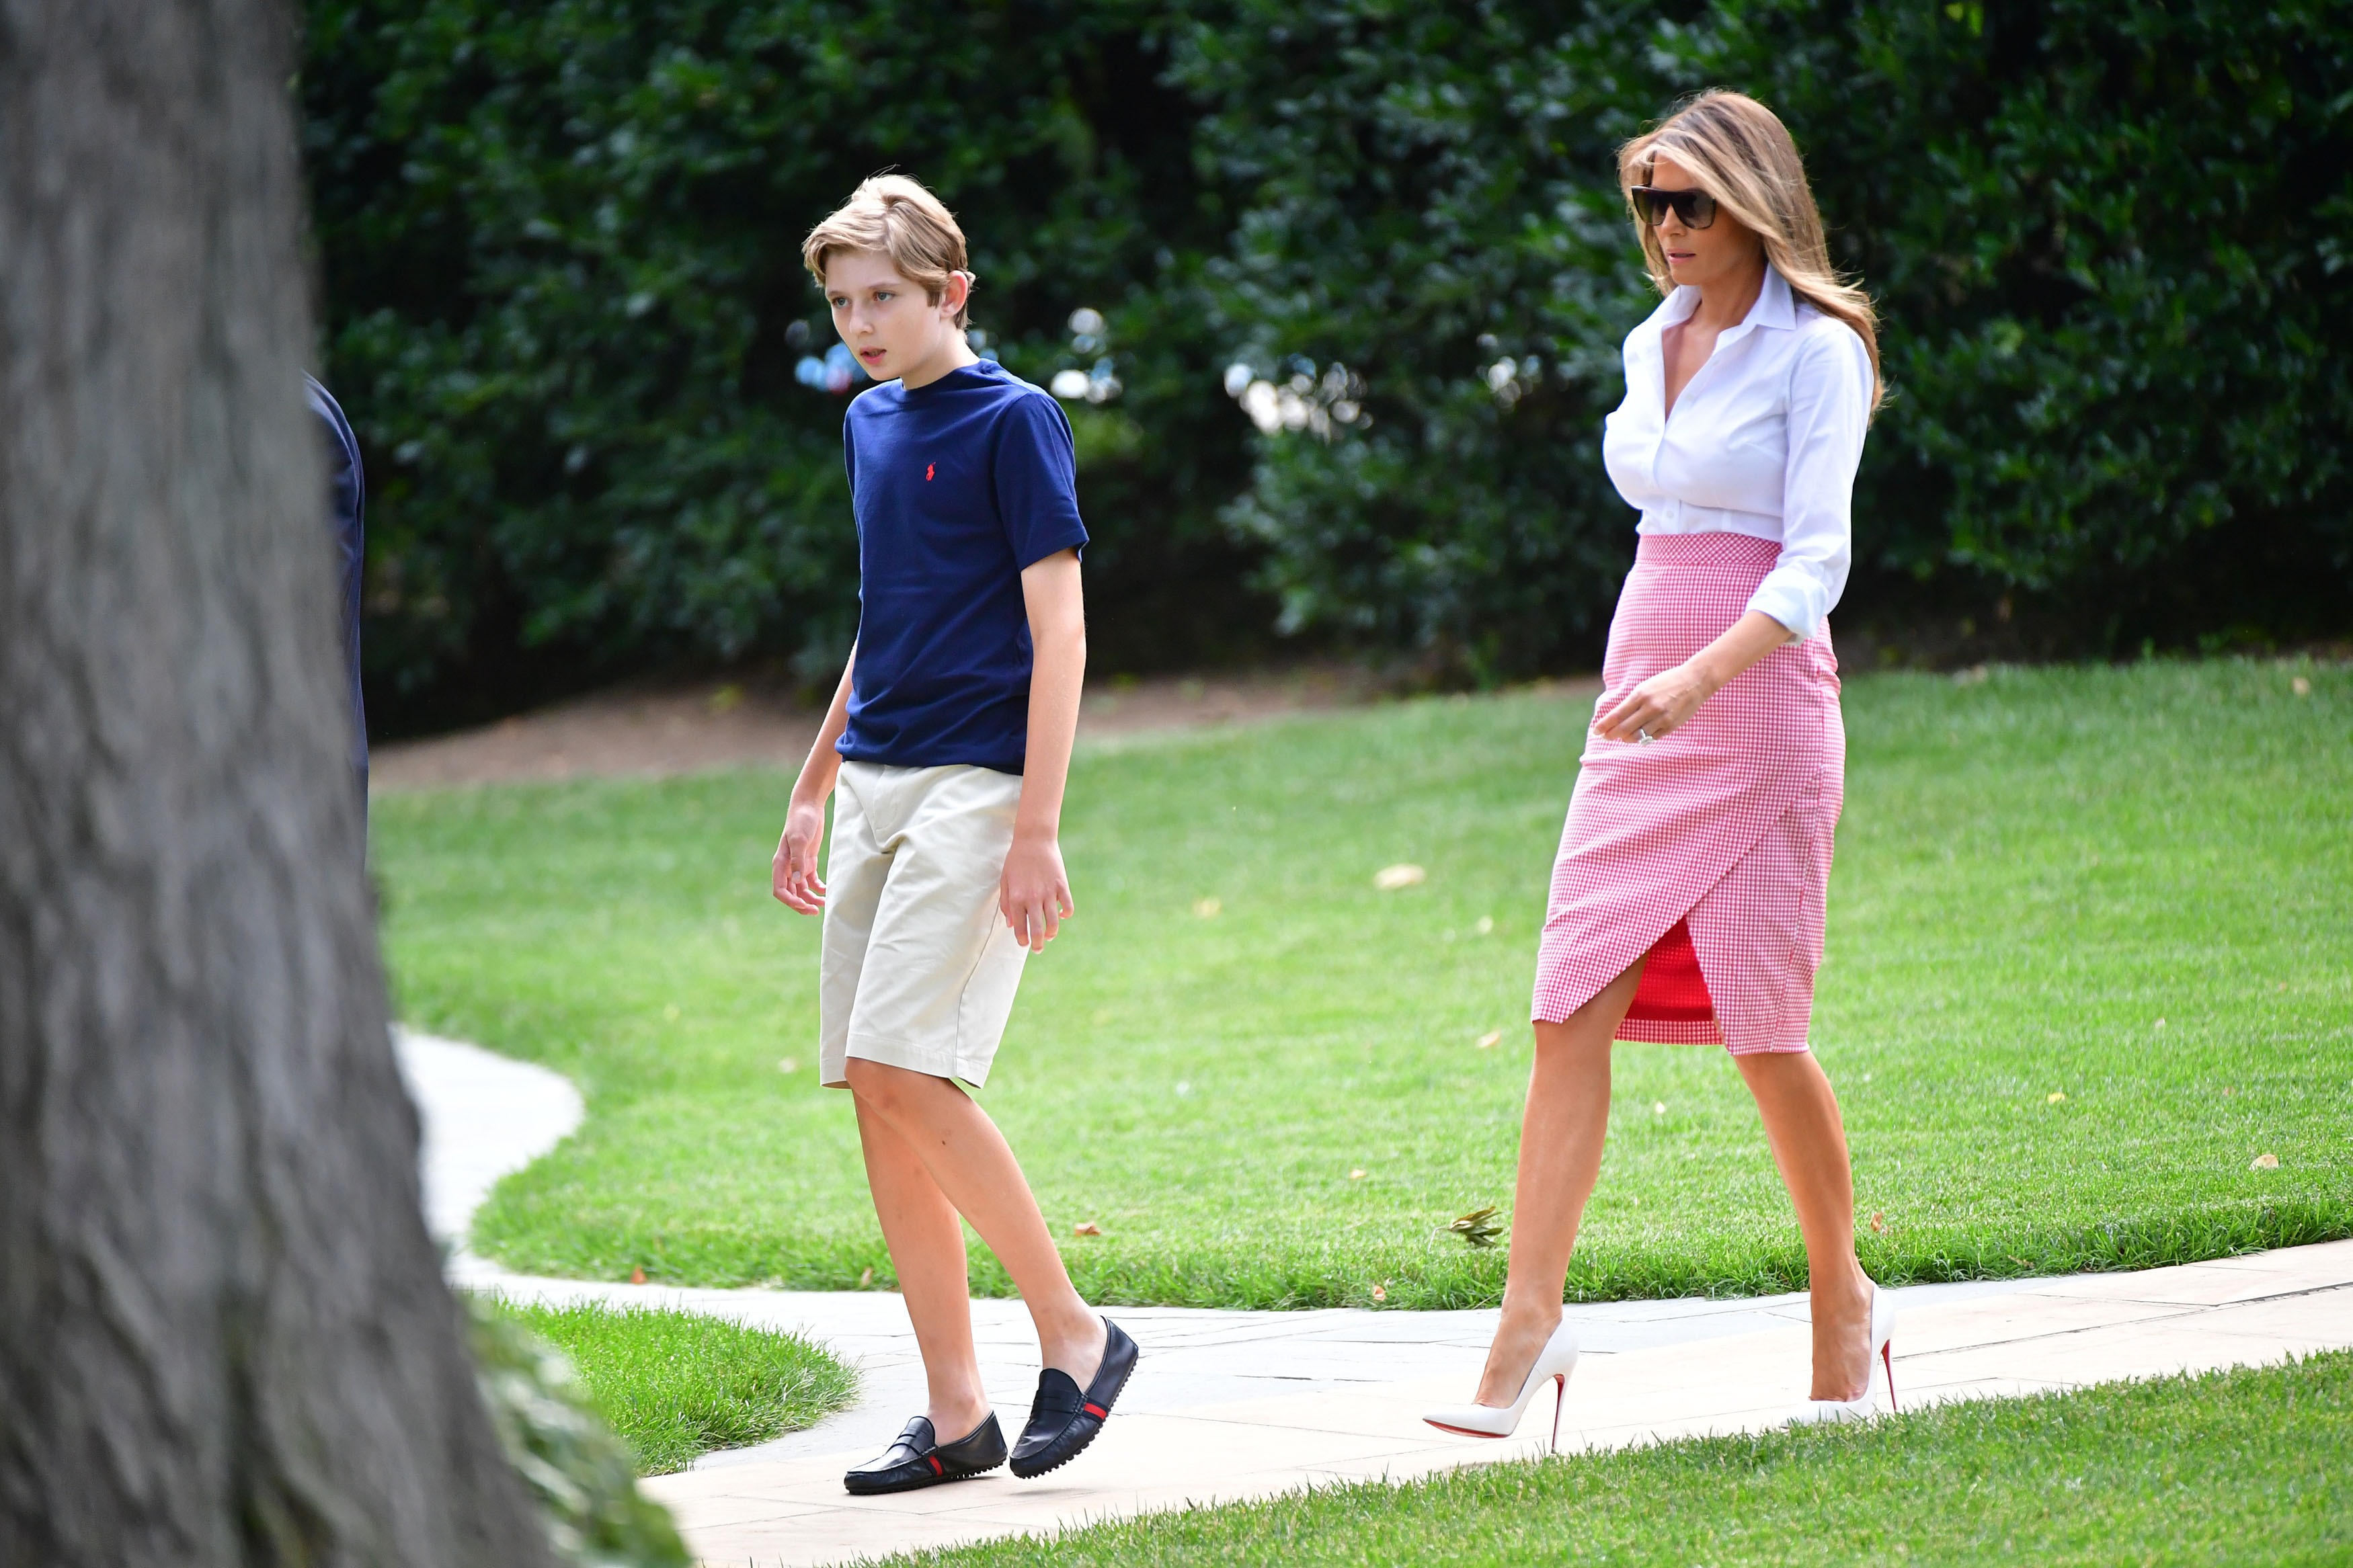 First Lady Melania Trump and son Barron depart the White House for a weekend trip to Bedminster, New Jersey with President Donald Trump, on June 30, 2017 in Washington, D.C. Photo by /UPI, Image: 339746987, License: Rights-managed, Restrictions: , Model Release: no, Credit line: Profimedia, UPI